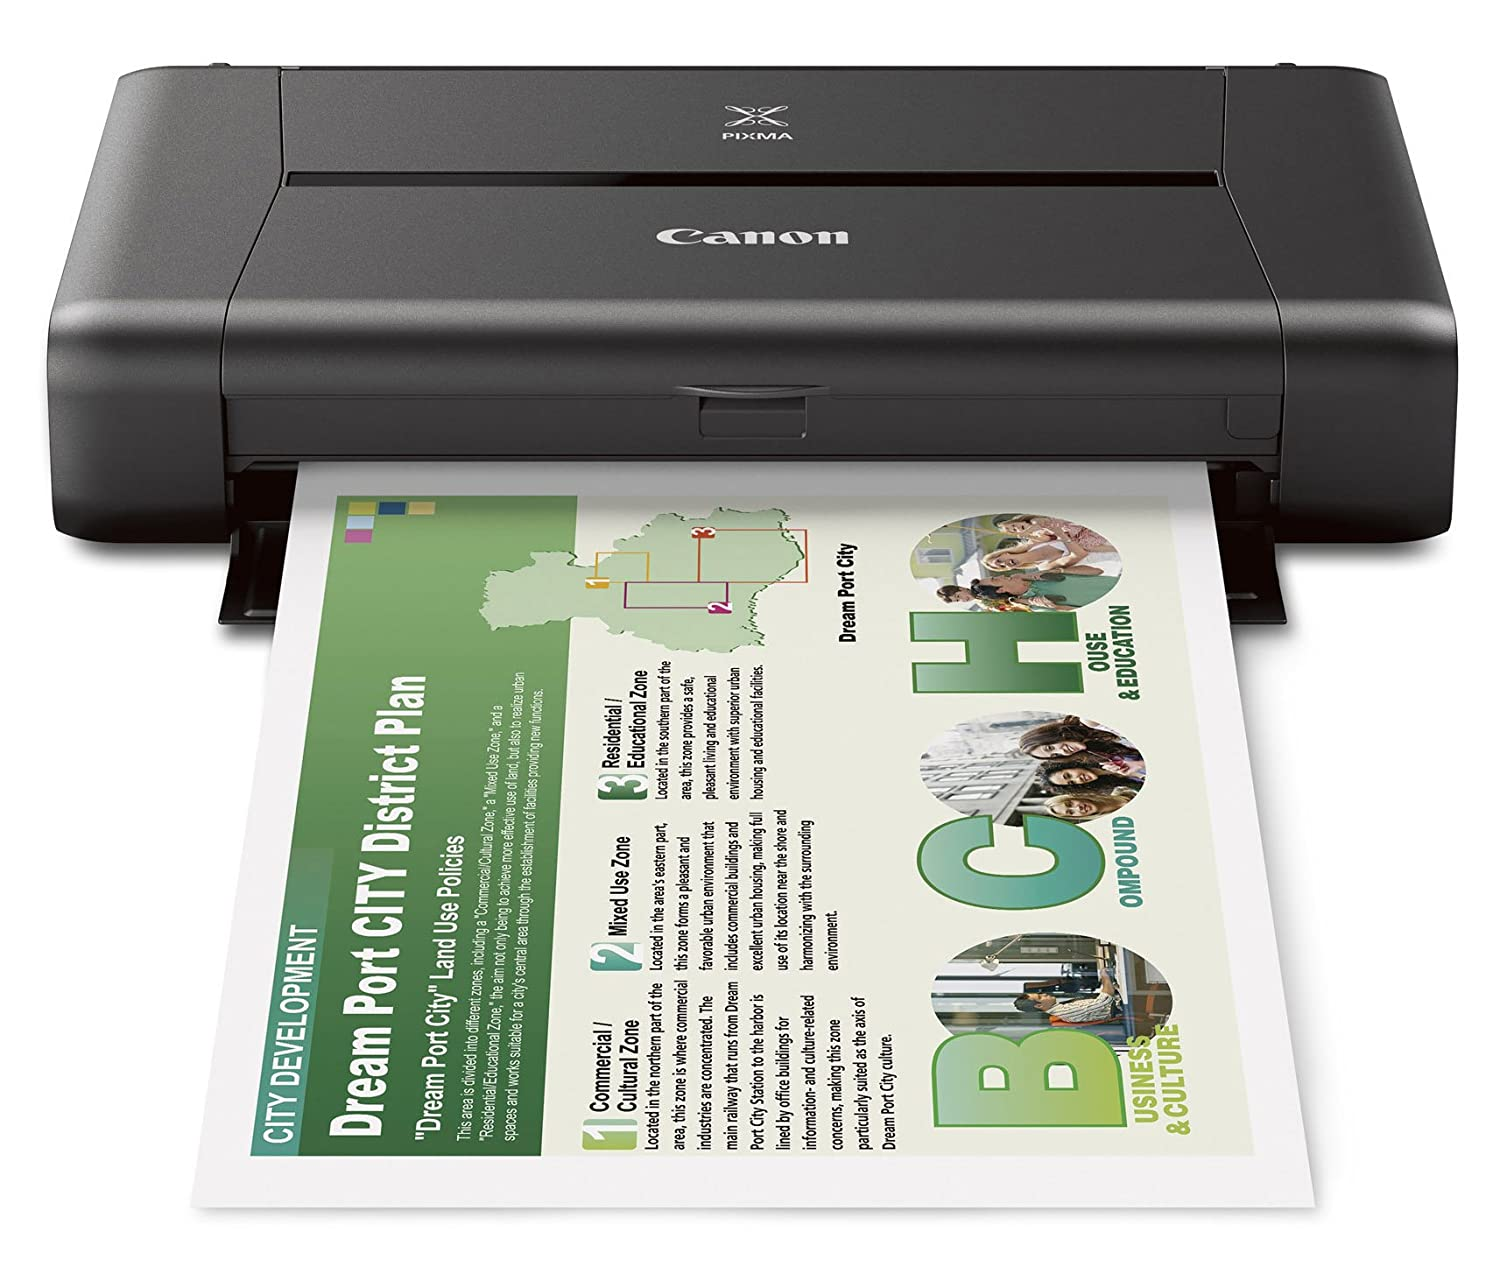 Best Portable Printers for 2019